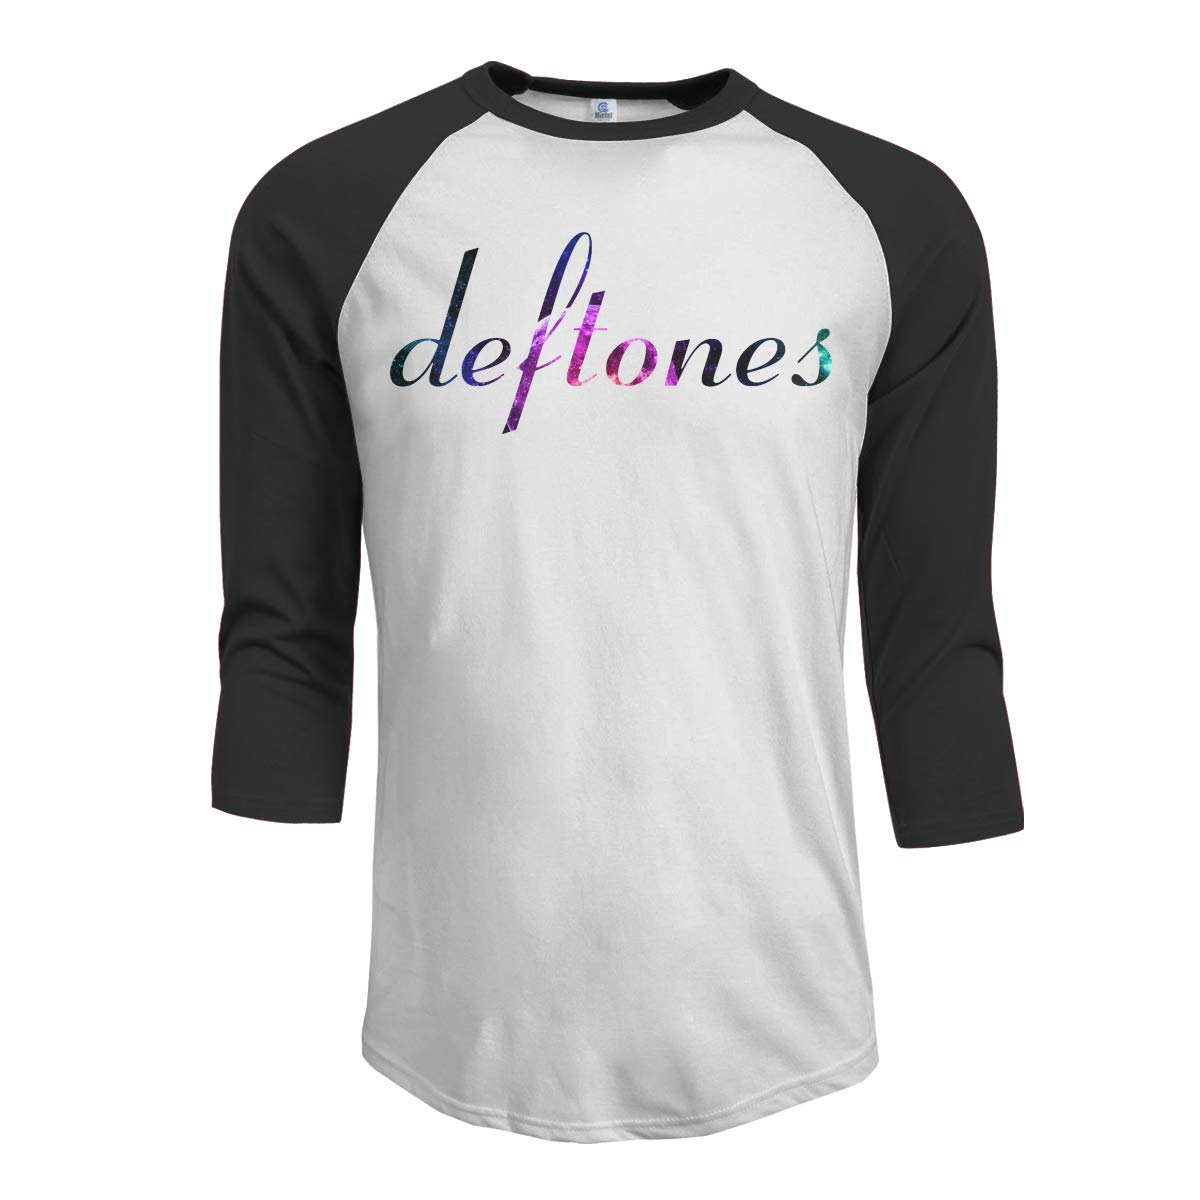 JeremiahR Deftones Men's 3/4 Sleeve Raglan Baseball T Shirt Black